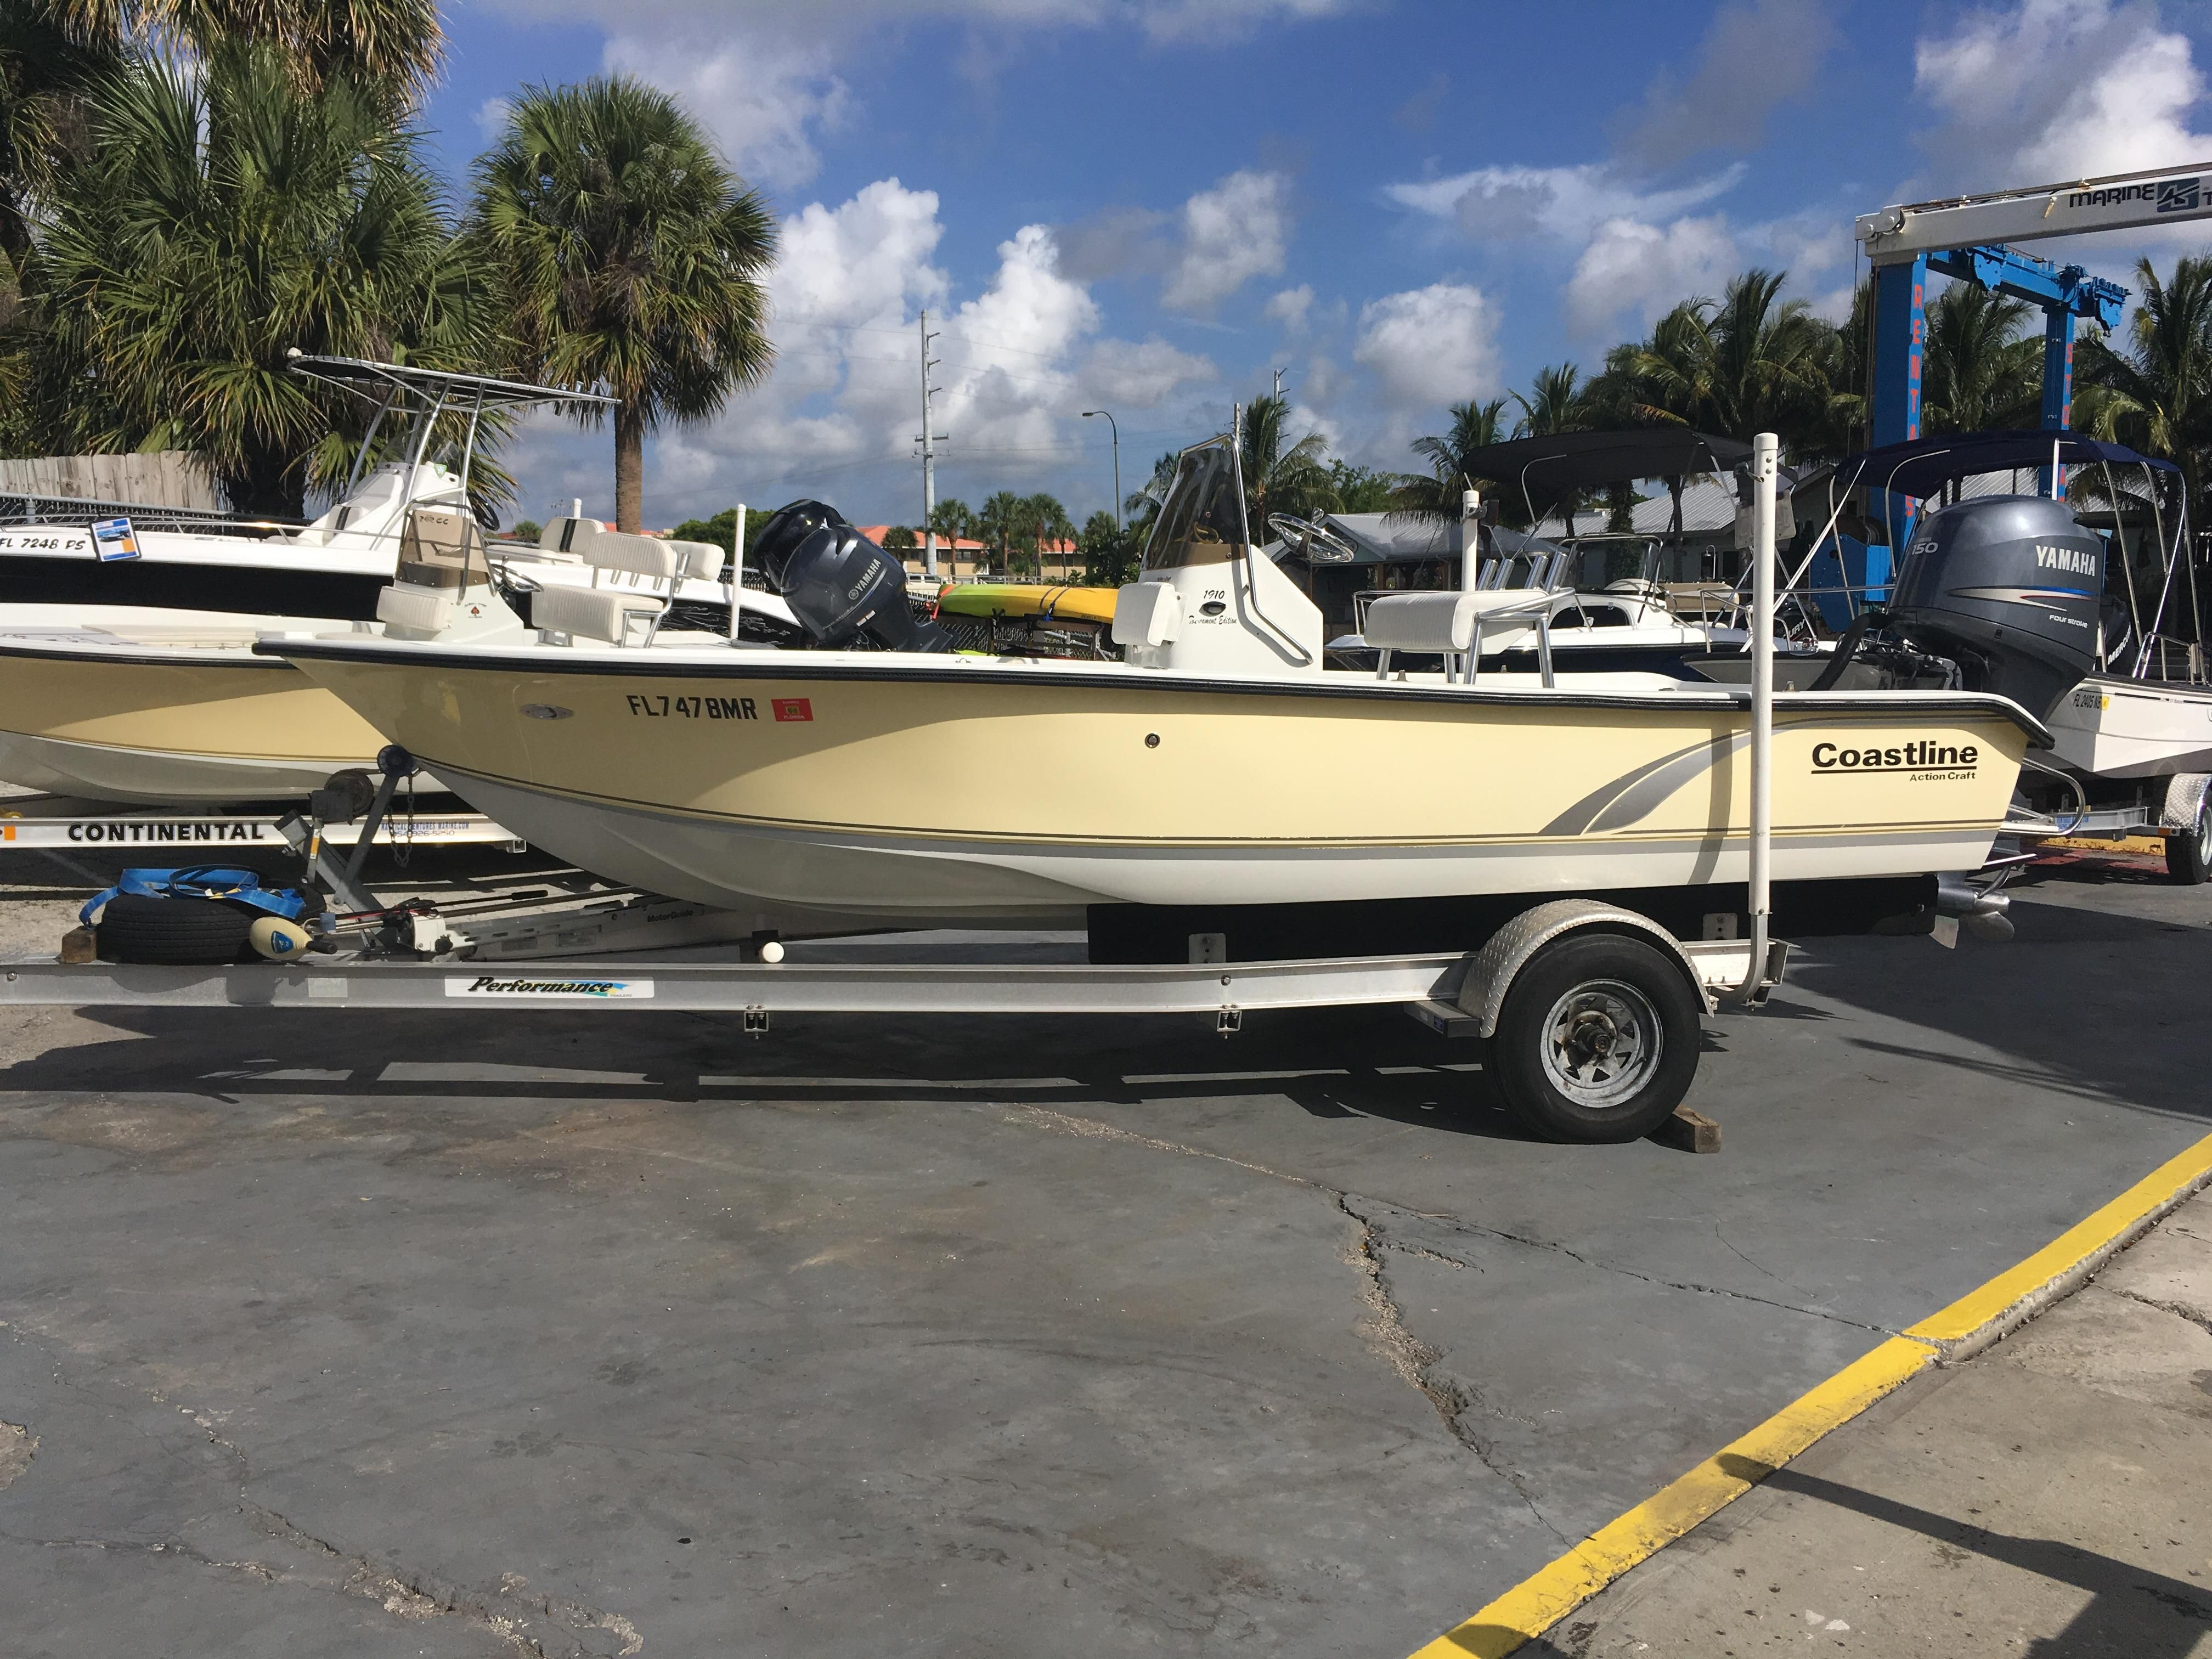 2005 action craft 191ote power boat for sale www for Action craft coastal bay